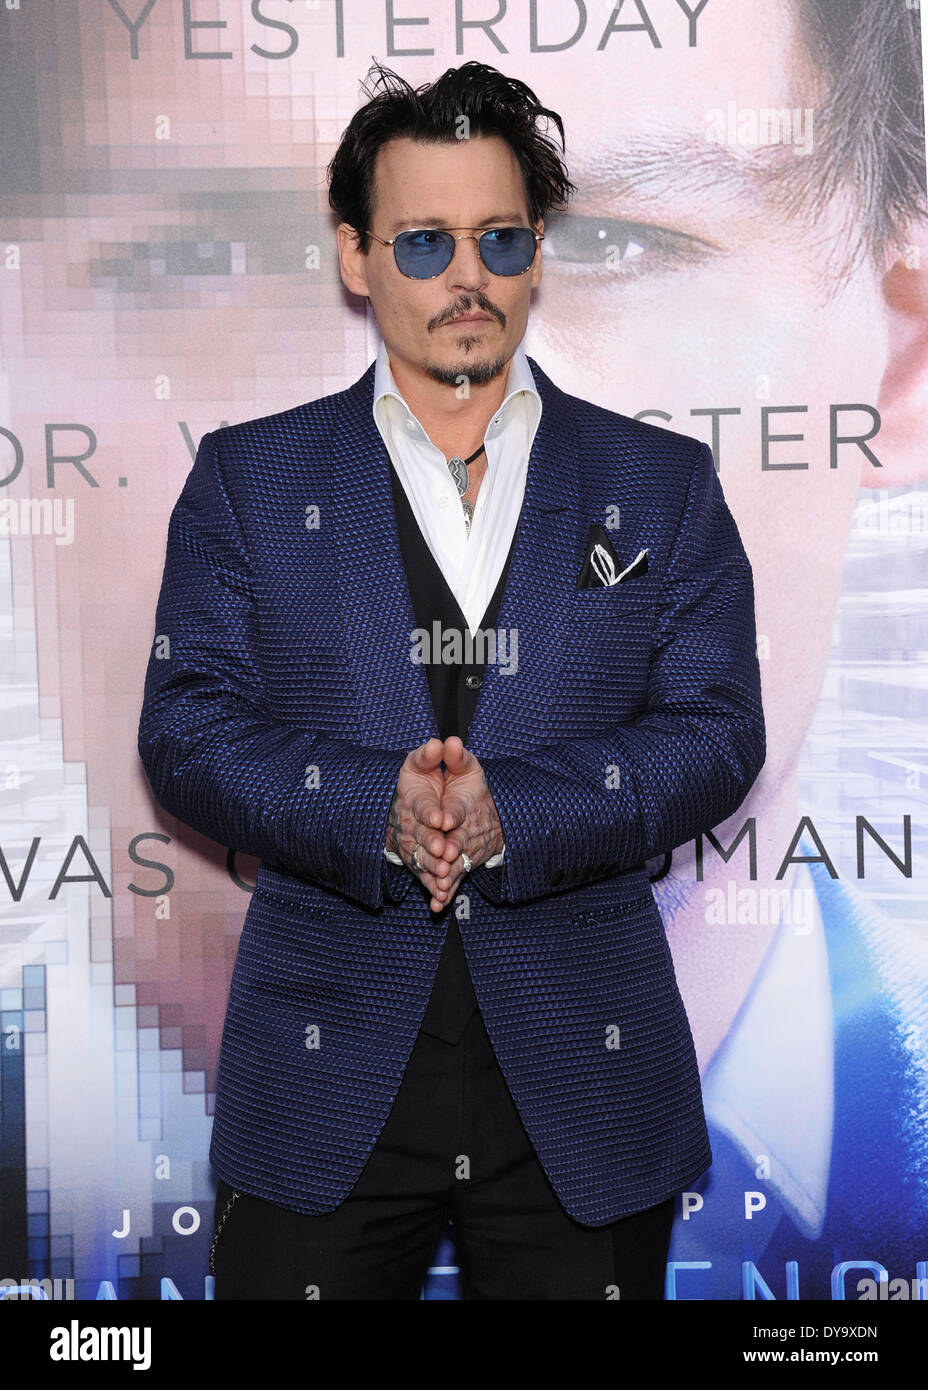 Westwood, California, USA. 10th Apr, 2014. Johnny Depp arrives for the premiere of the film 'Transcendence' at the Village theater. Credit:  Lisa O'Connor/ZUMAPRESS.com/Alamy Live News - Stock Image